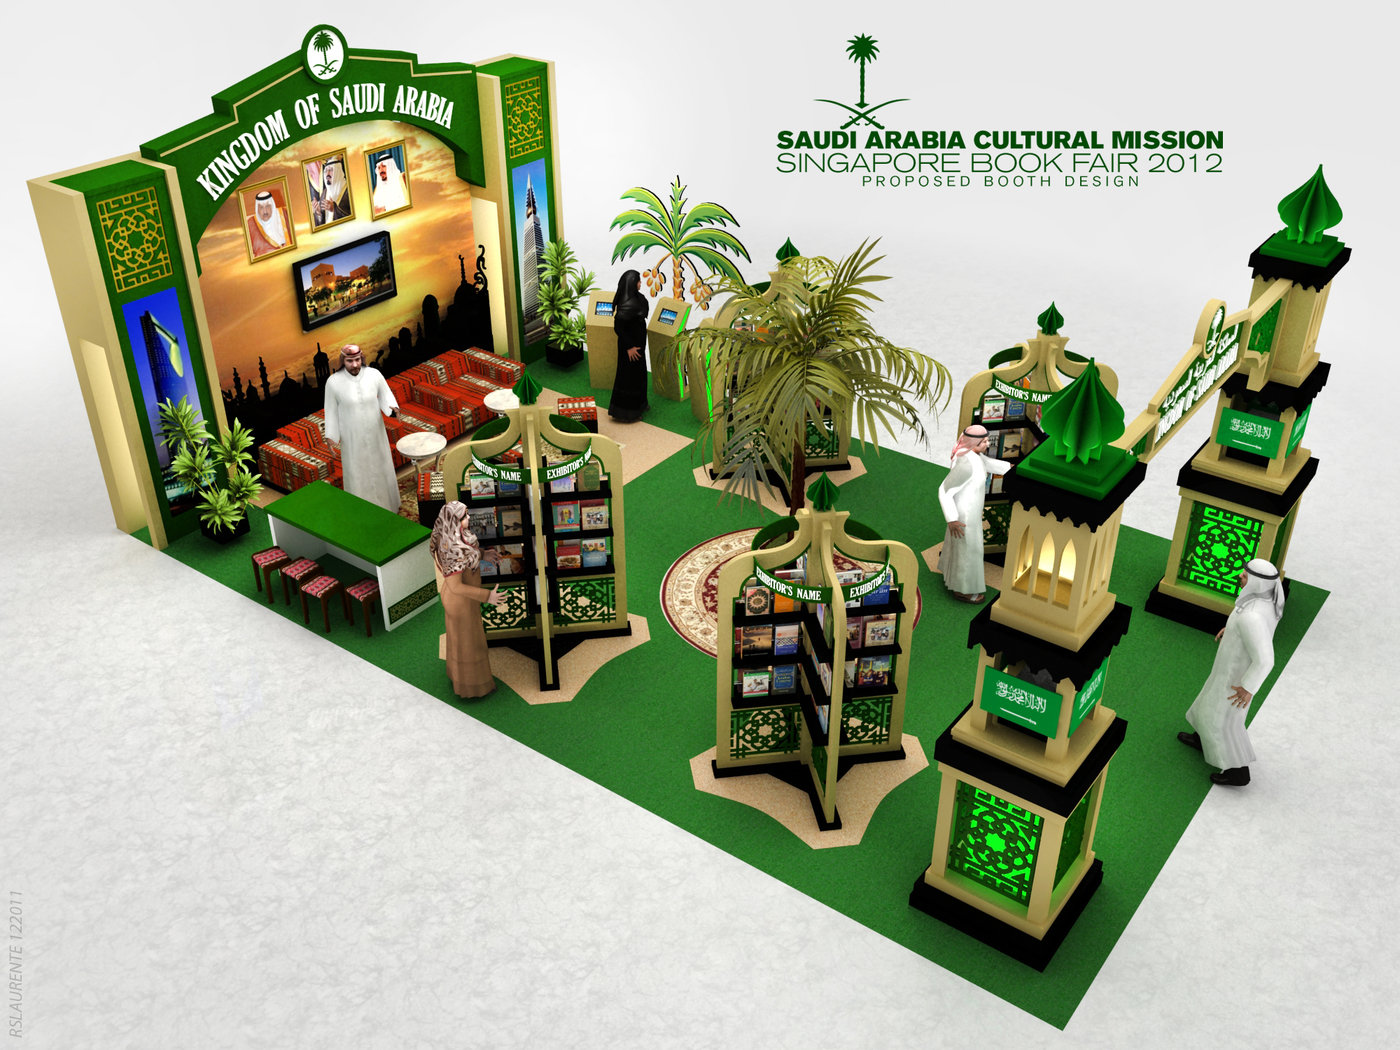 Pro Expo Communication Stands Amp Events : Exhibition design d by rommel laurente at coroflot